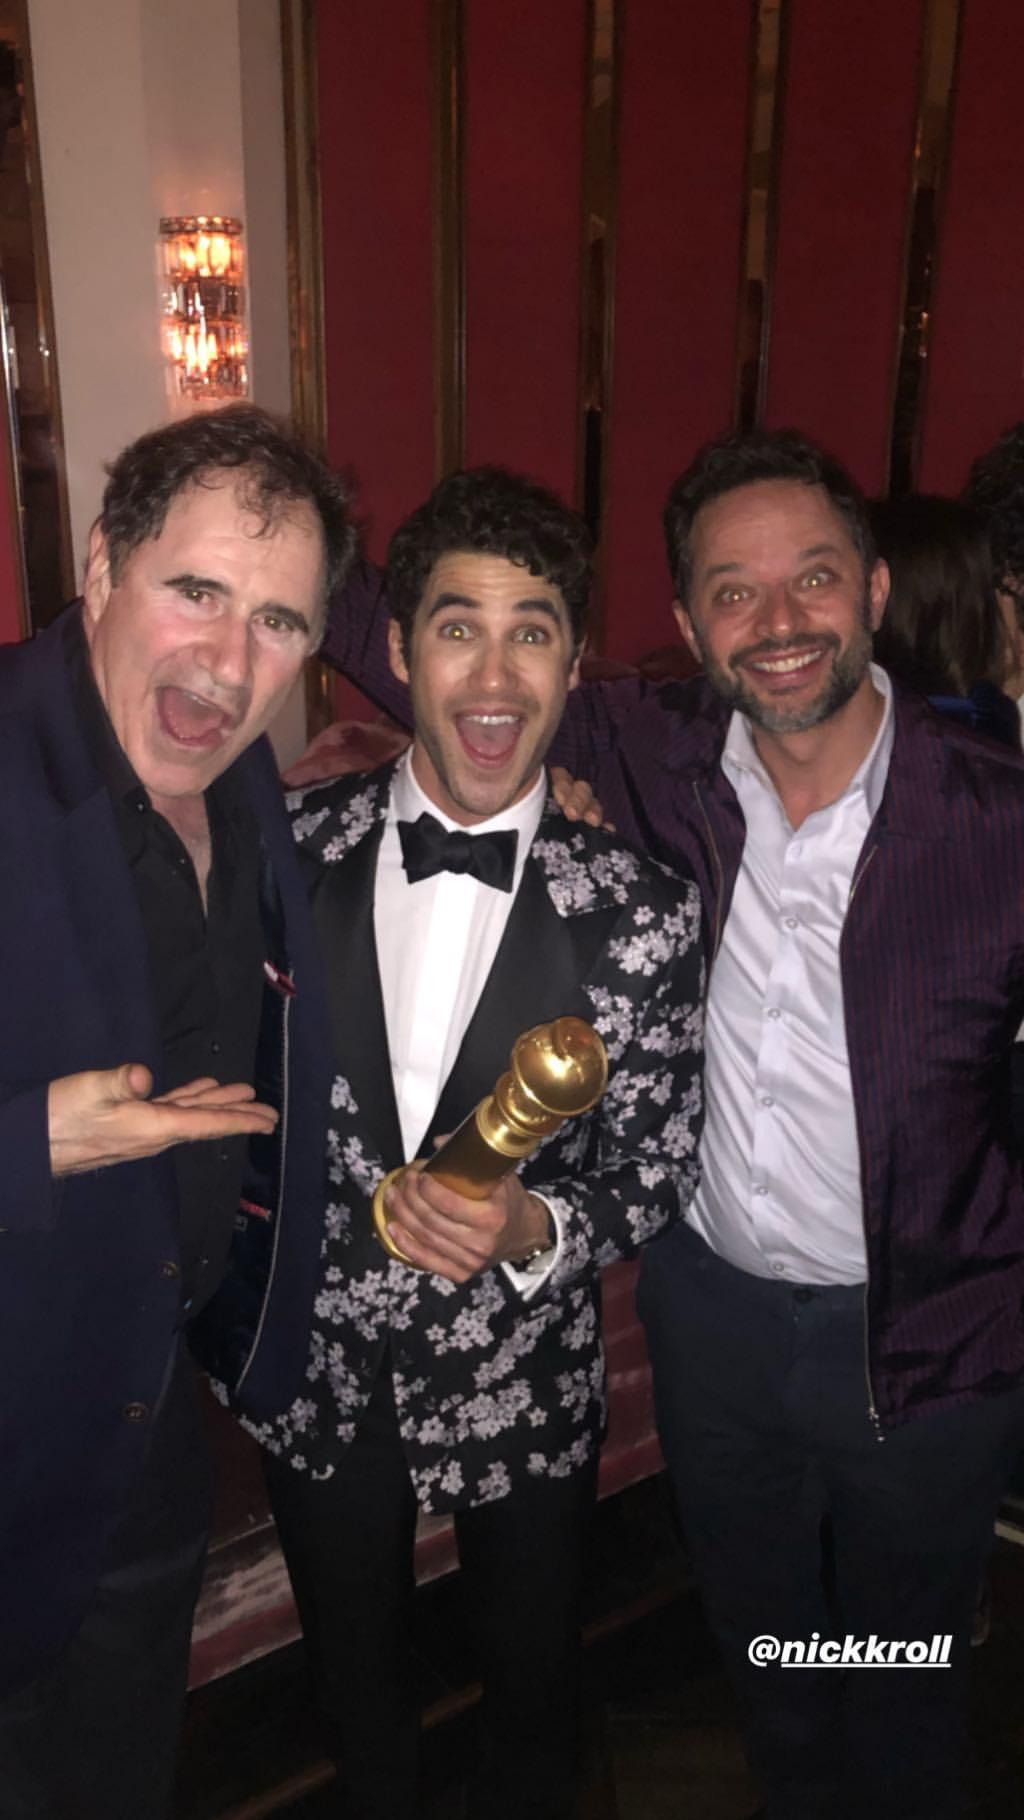 Topics tagged under goldenglobes on Darren Criss Fan Community Tumblr_pl6oo5iaqd1v3daoq_1280